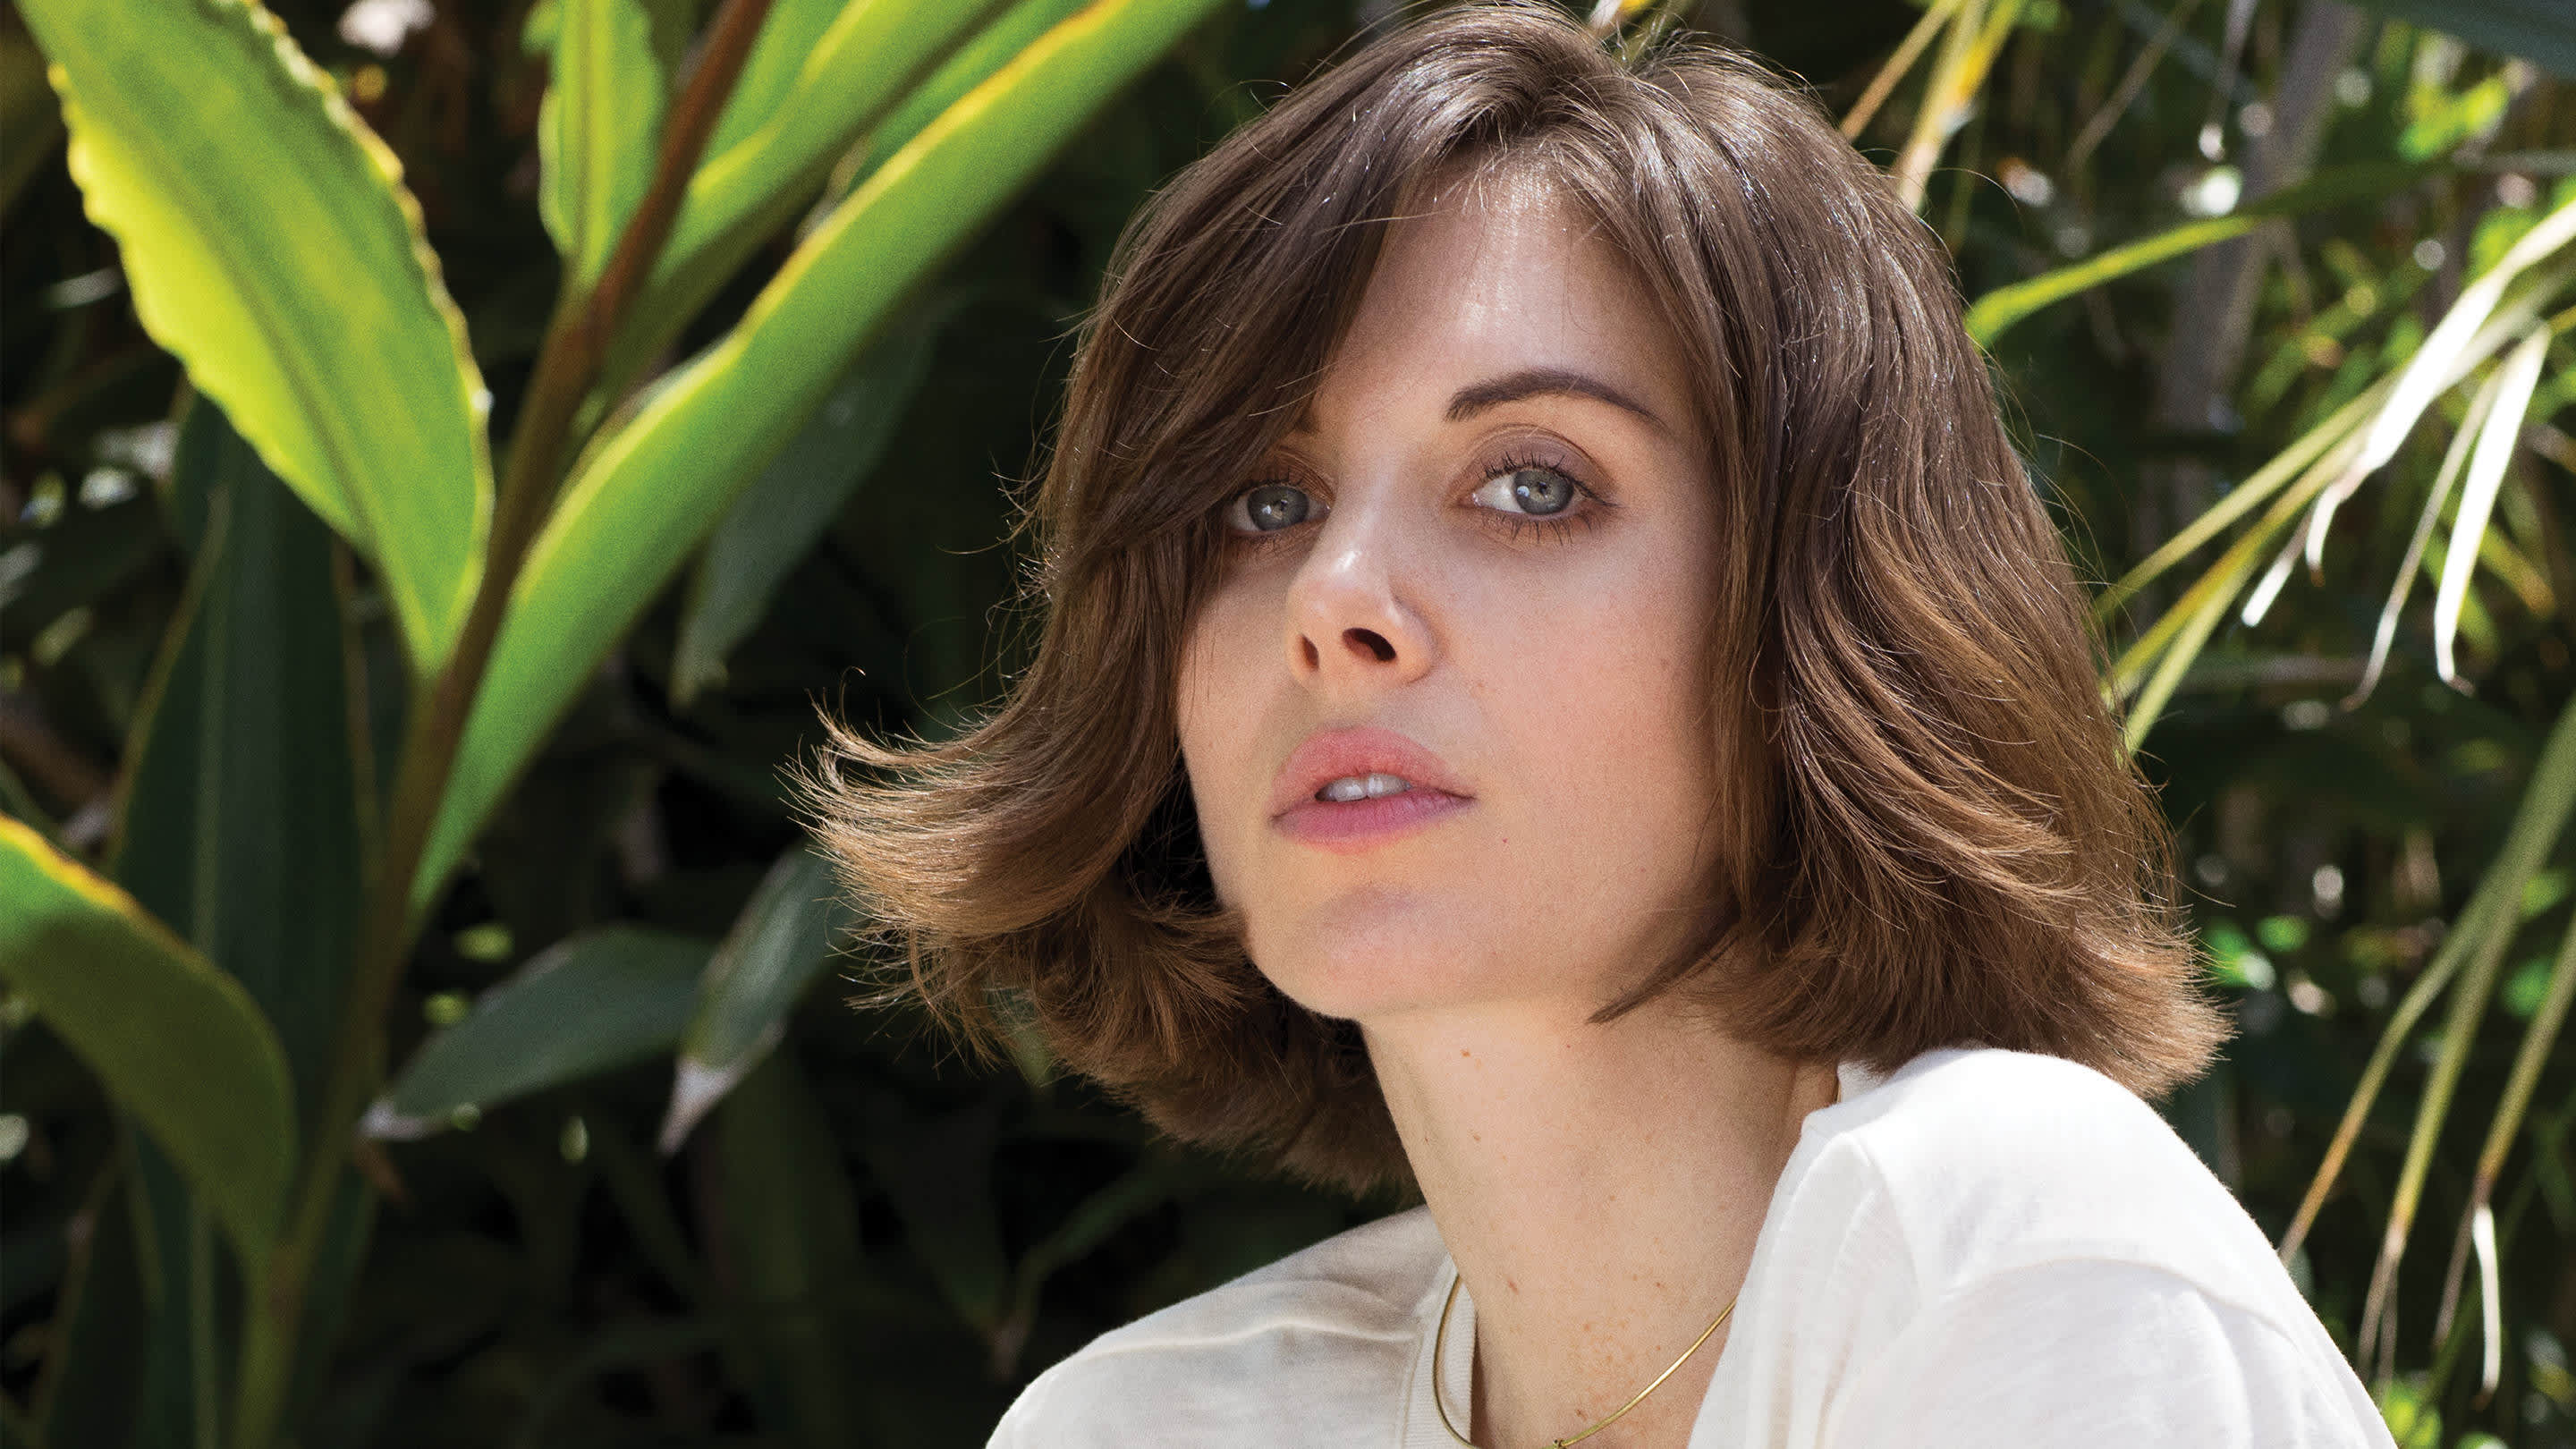 Alison Brie Glow Boobs alison brie talks going nude, wrestling in 2016 playboy 20q